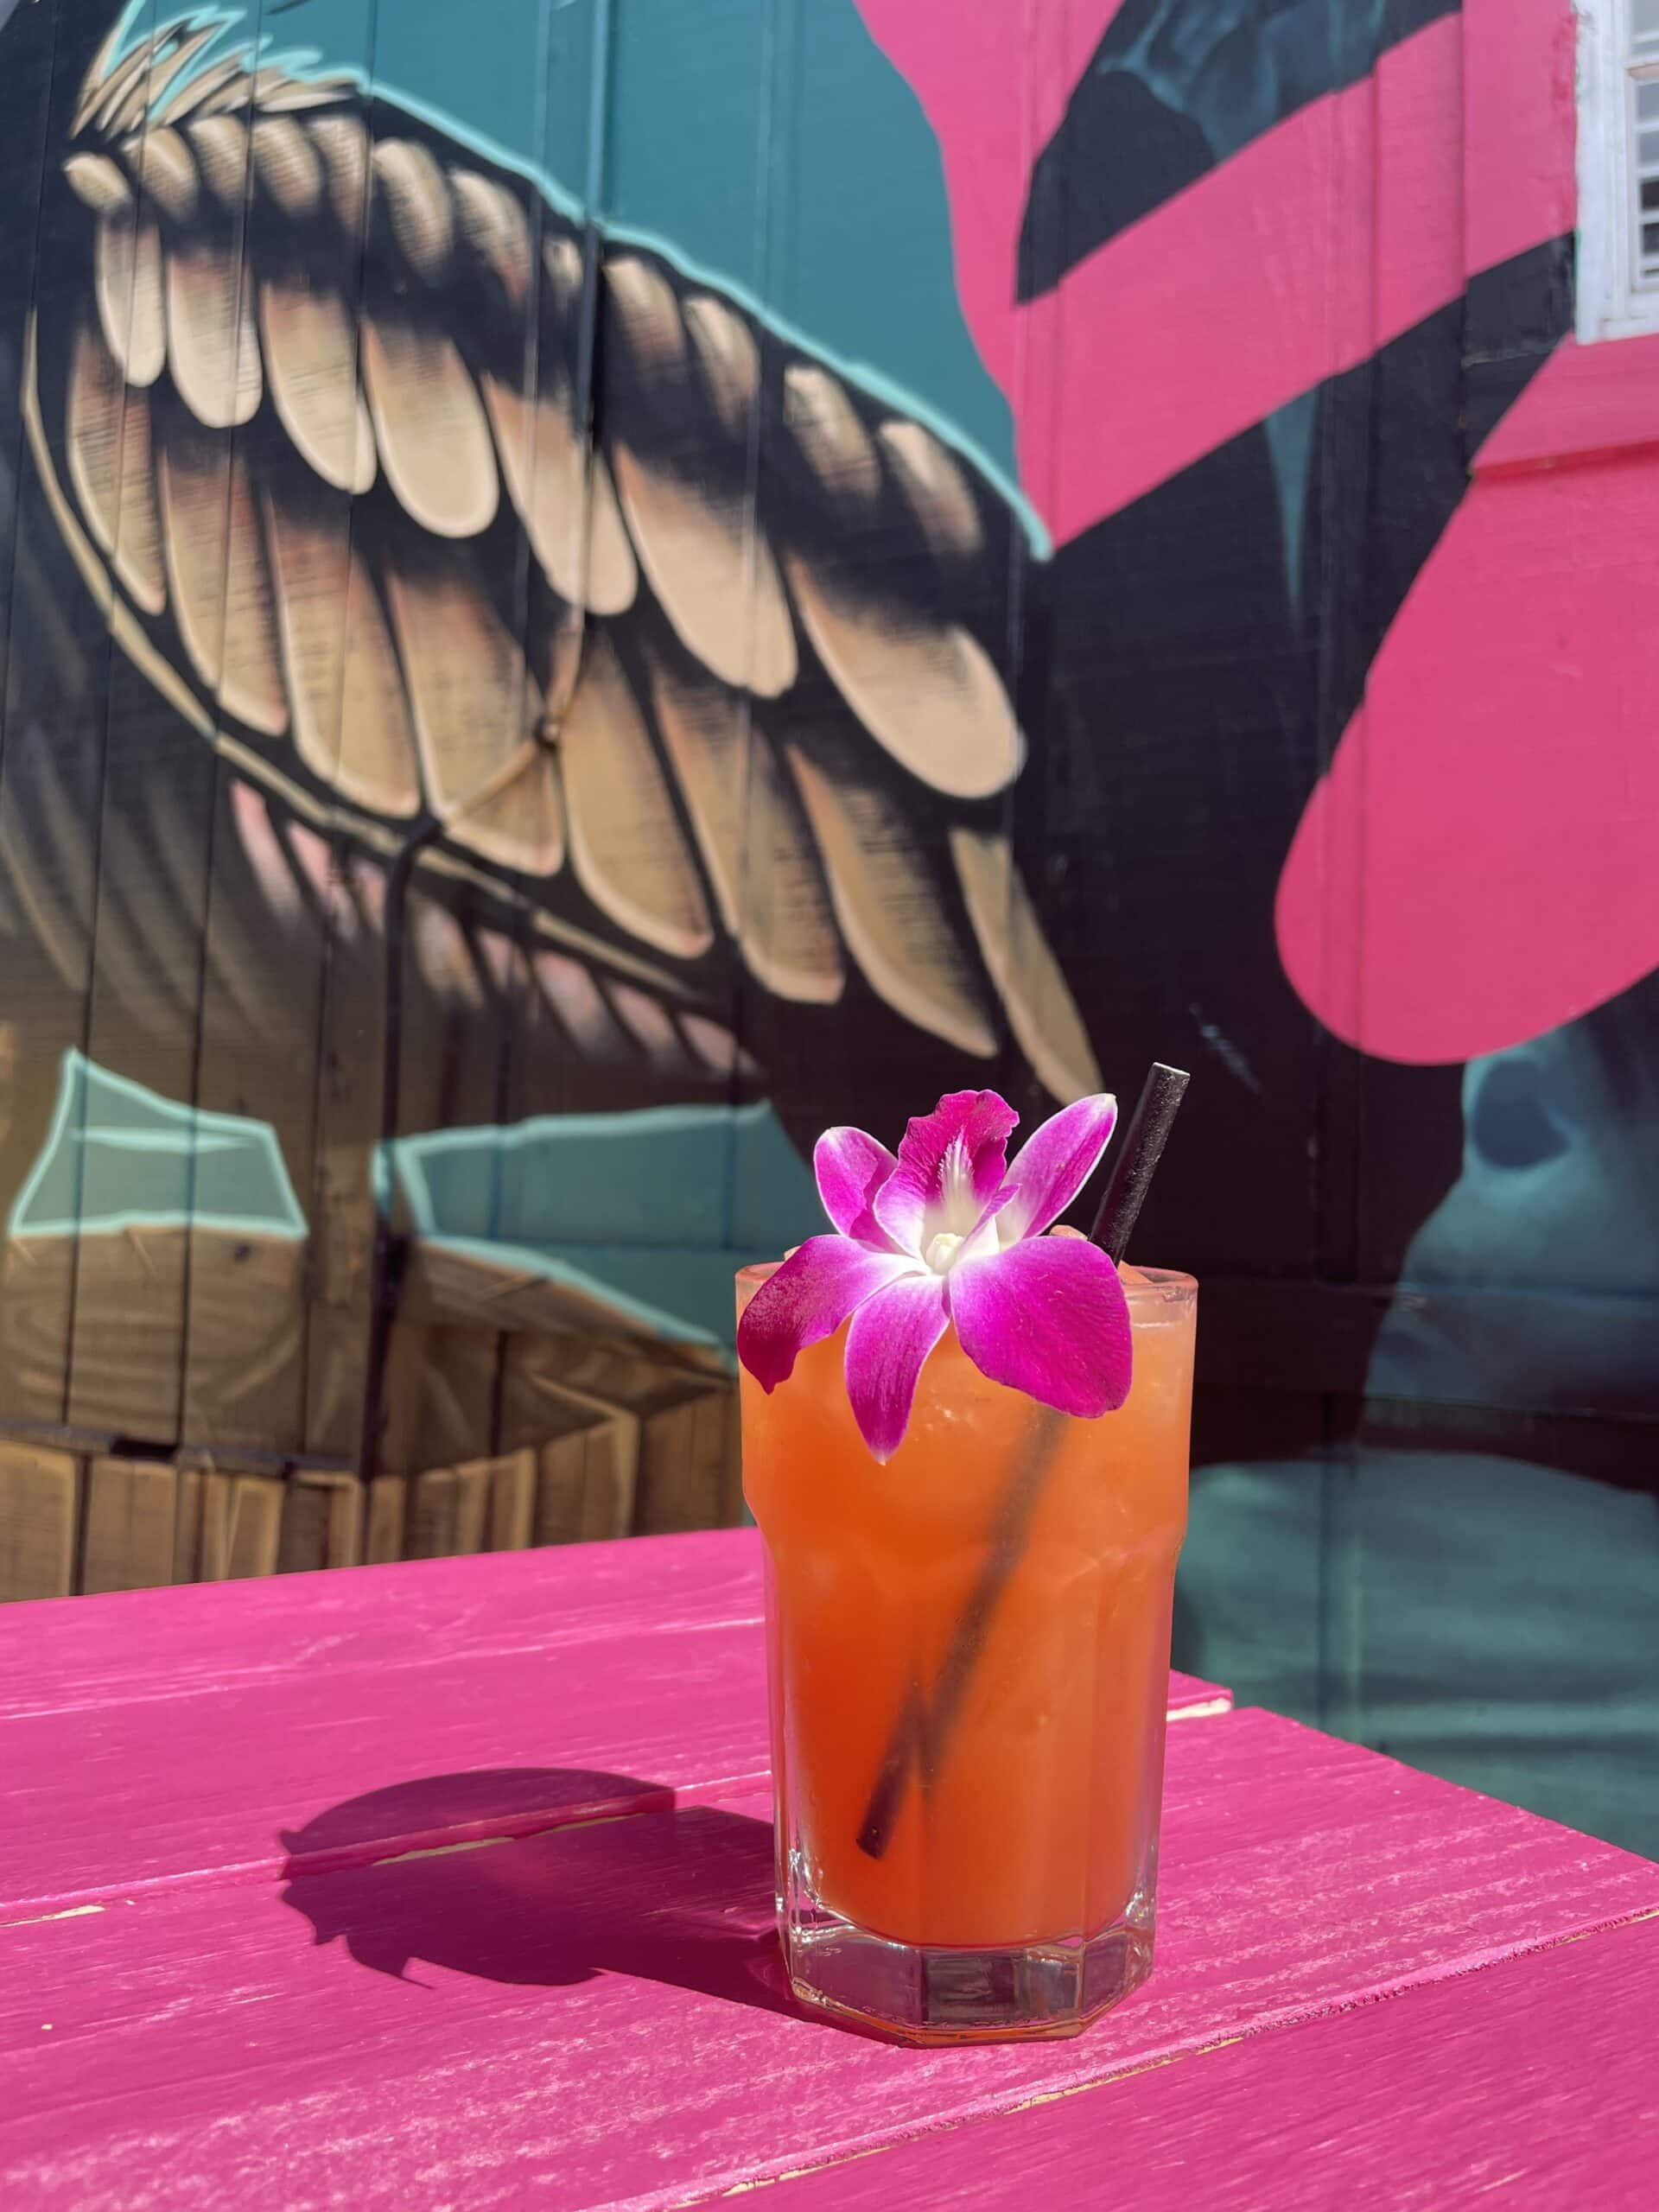 Image of red-colored cocktail in glass with purple orchid in front of colorful mural.